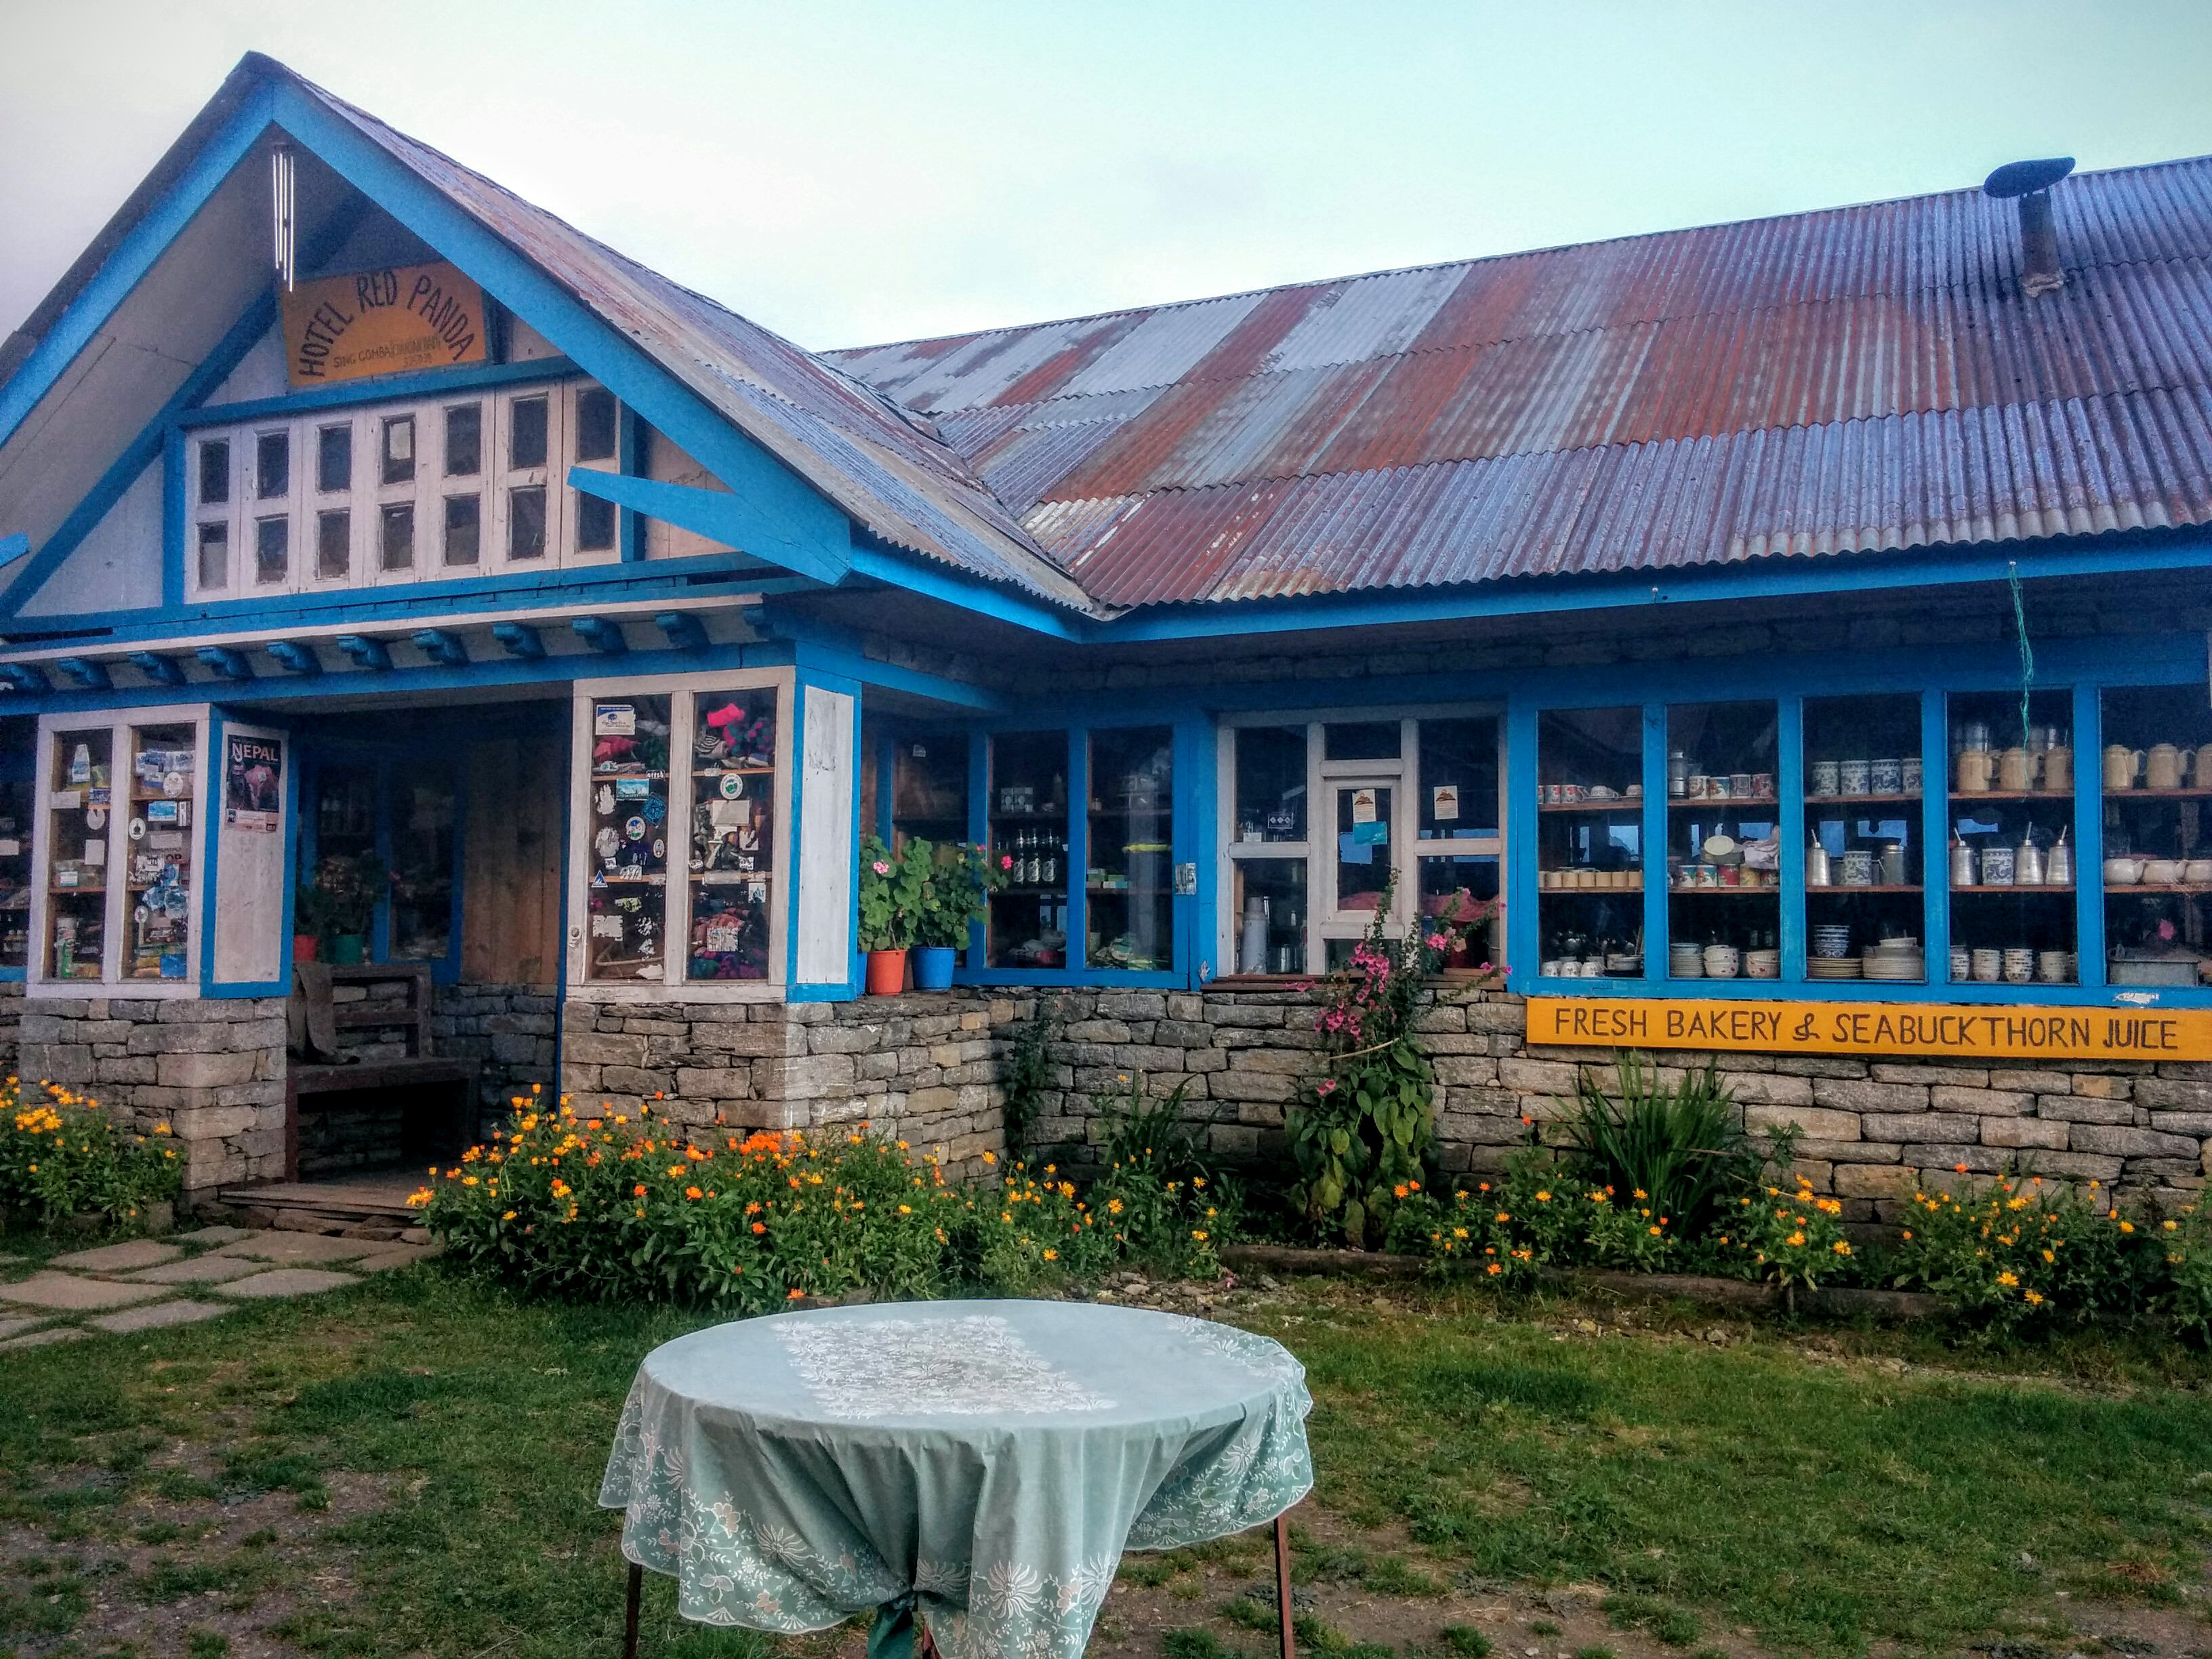 My hotel in Chandanbari. Most hotels along the trail are not remotely as nice as this one.